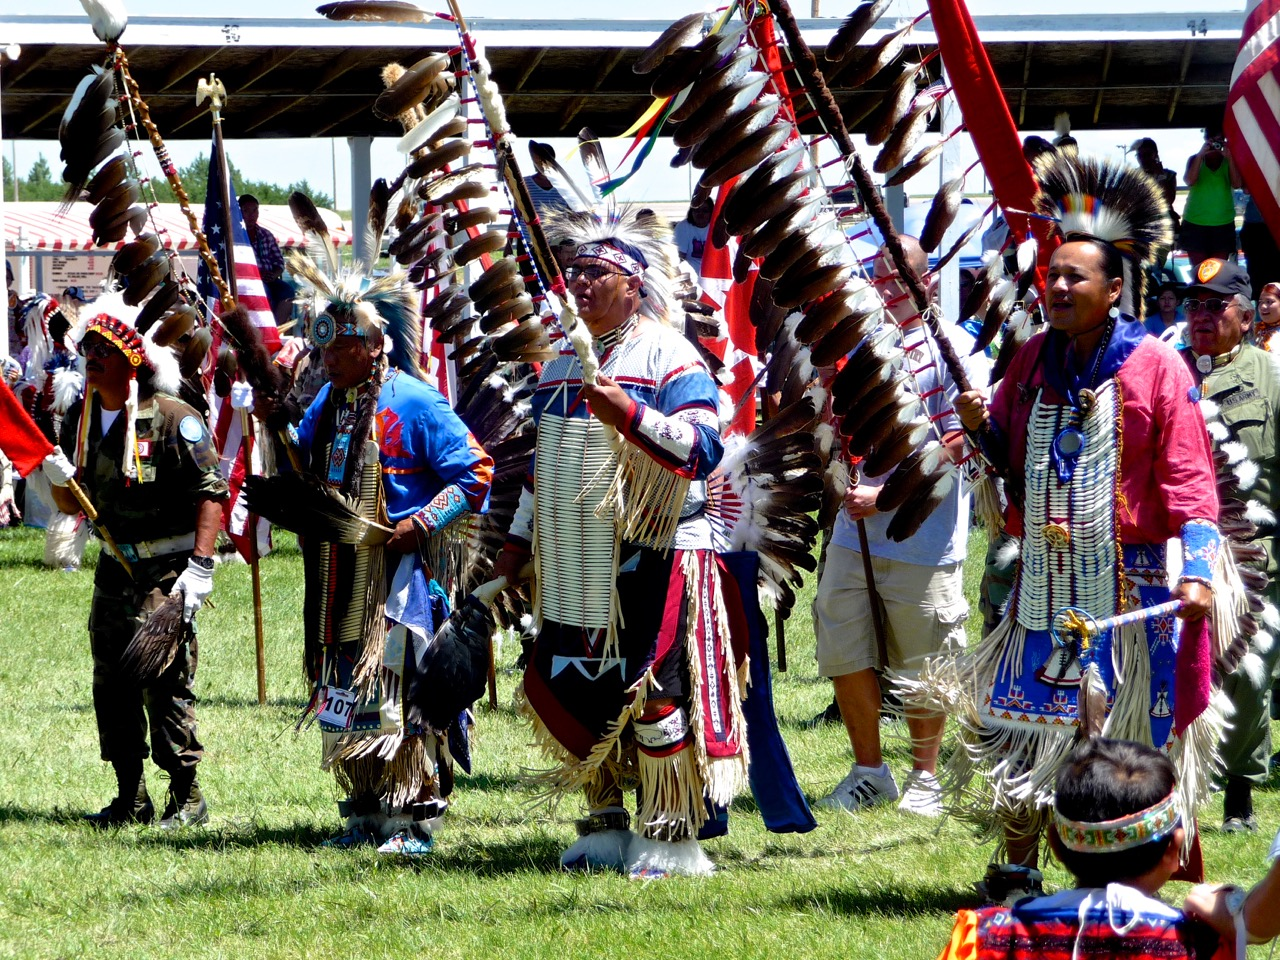 Grand Entry, Rosebud Powwow, South Dakota, USA, 2011.